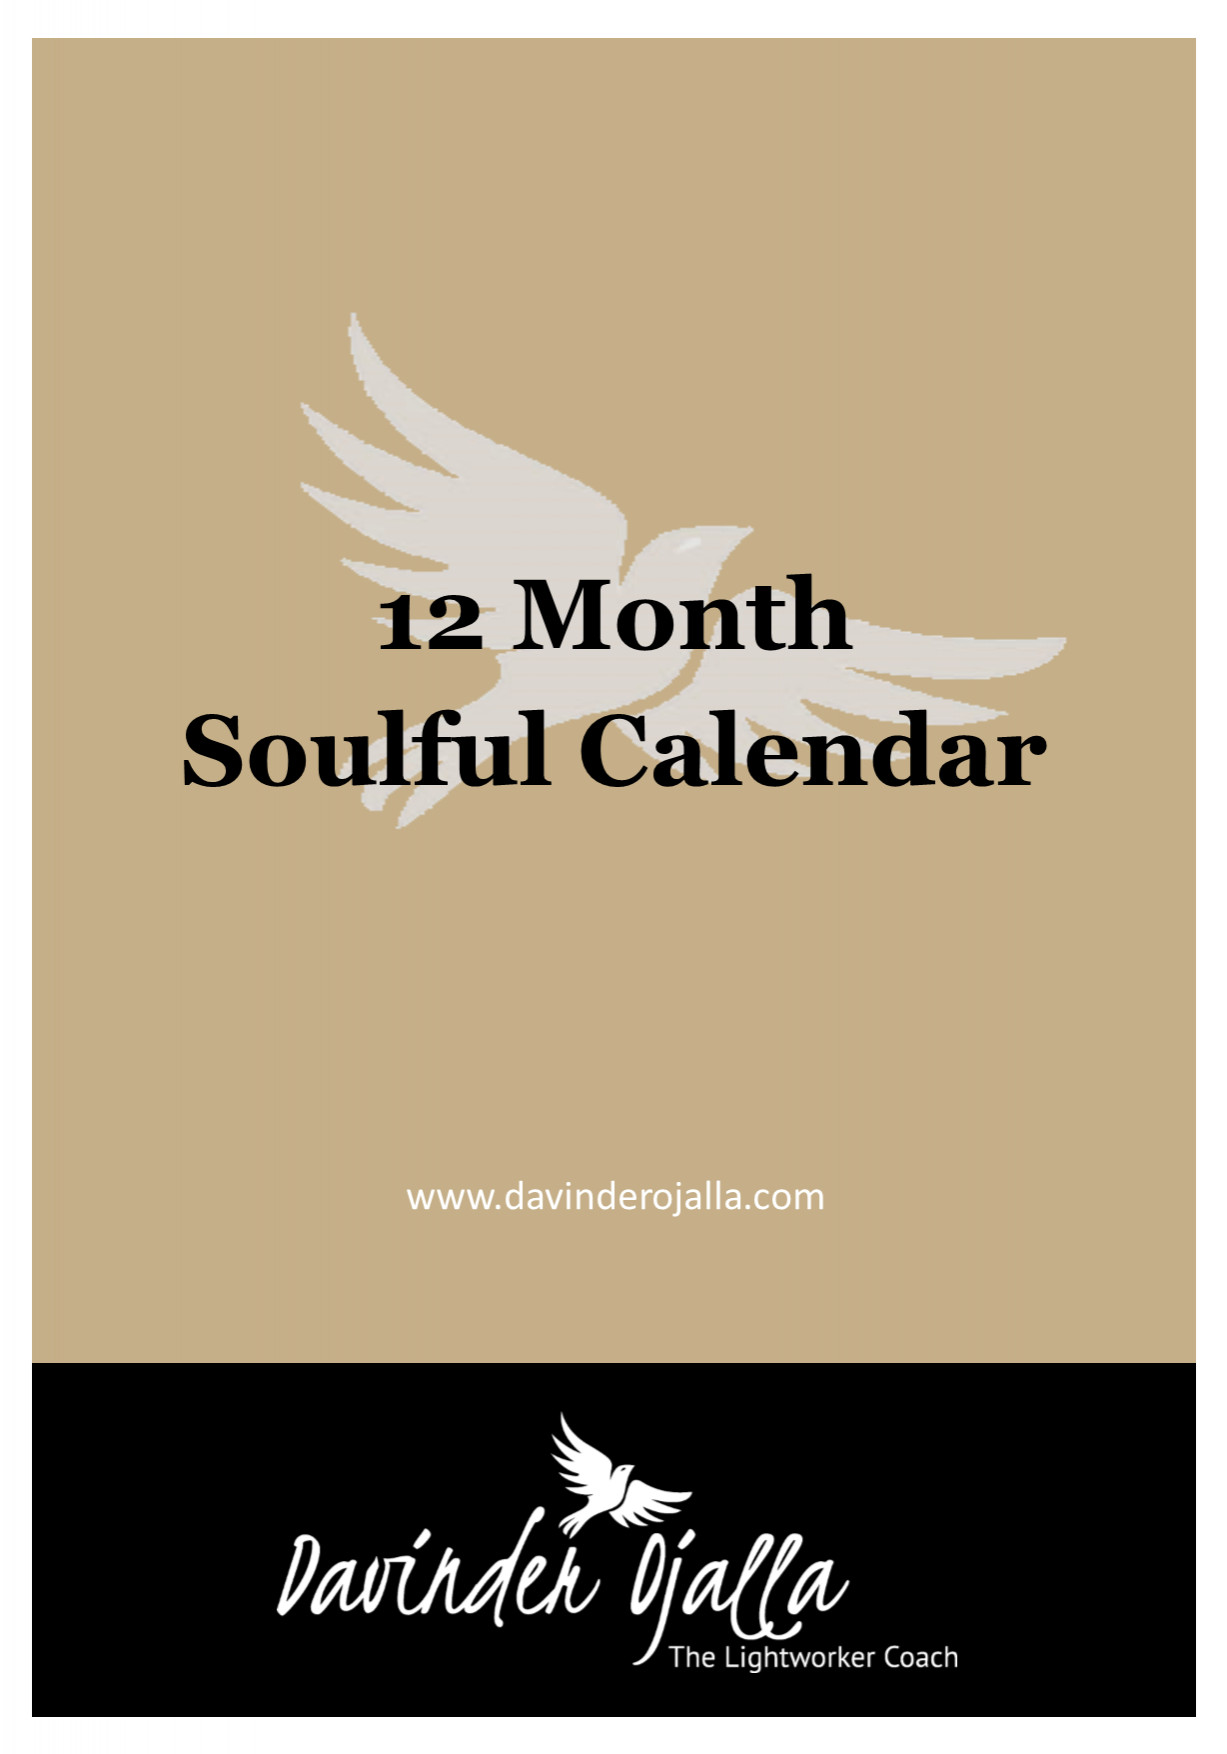 12 Month Soulful Calendar